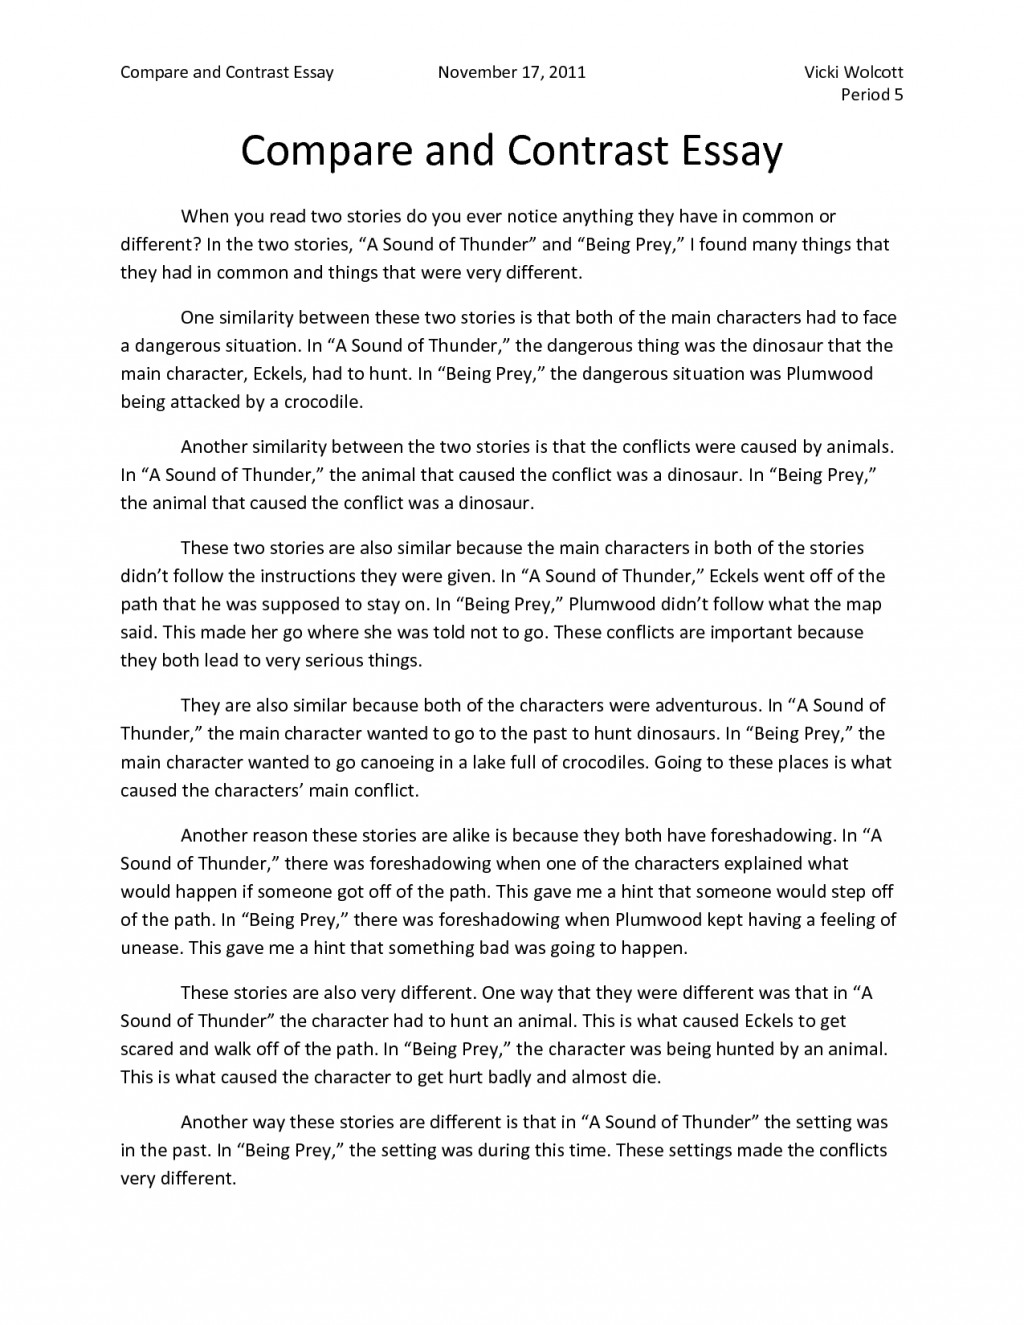 003 Perfect Essays Compare And Contrast Essay Introduction Example College Examples  Sensational Sample For Comparison Point-by-point Of An ParagraphLarge